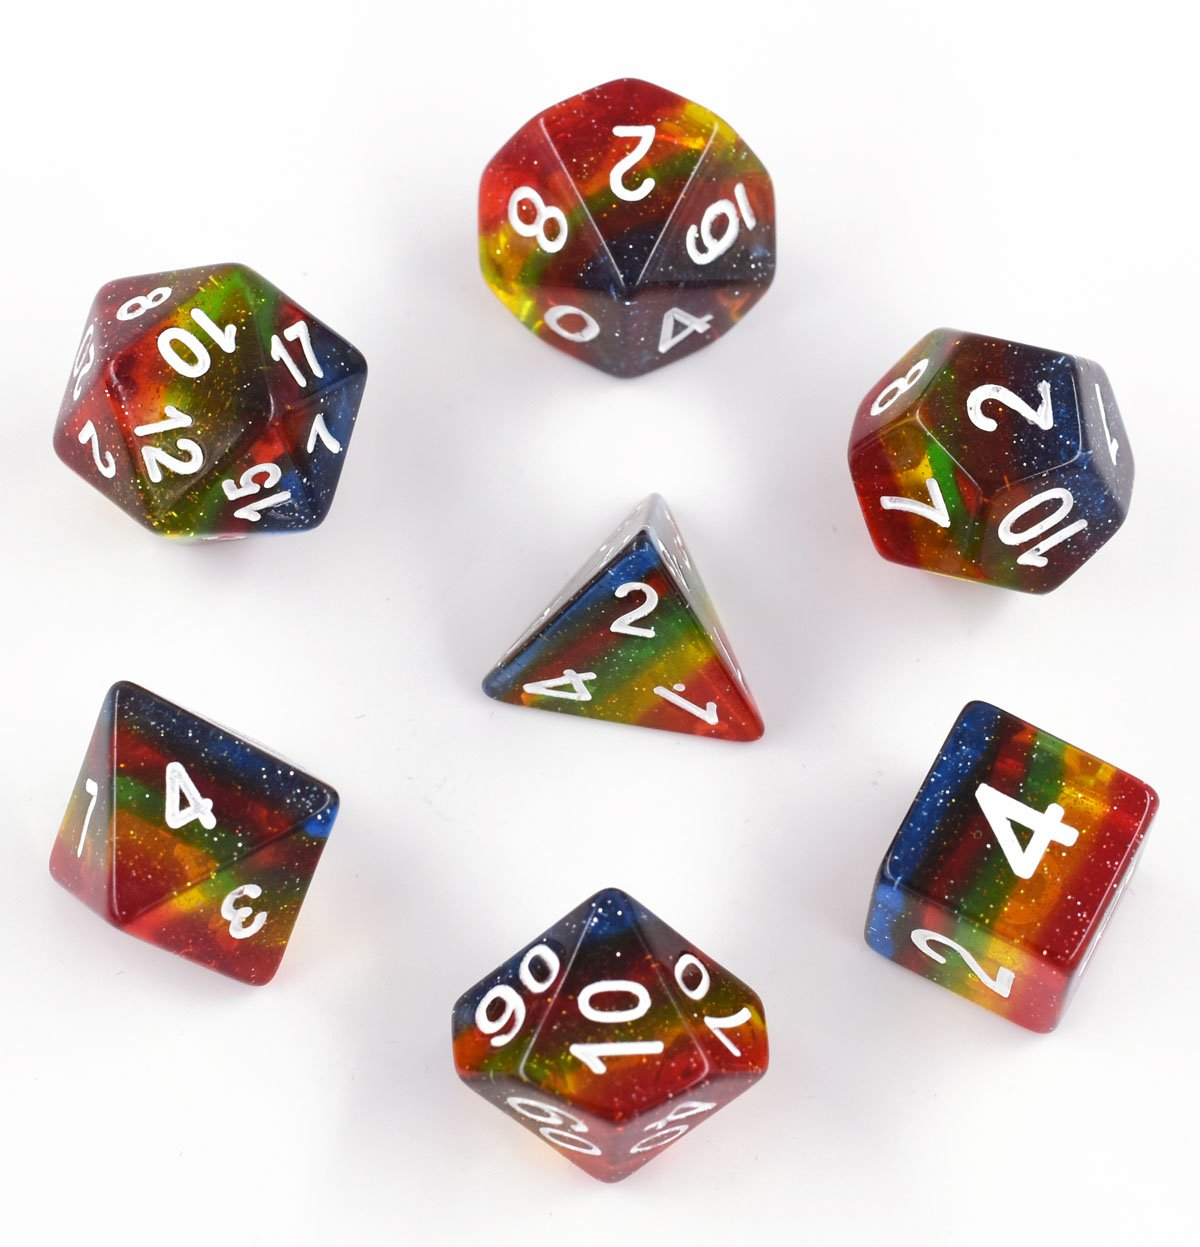 HD DICE Rainbow Glitter Dice, Polyhedral Dice Set Transparent Galaxy Dice for DND Dungeons and Dragons Pathfinde MTG RGP RolePlaying Game